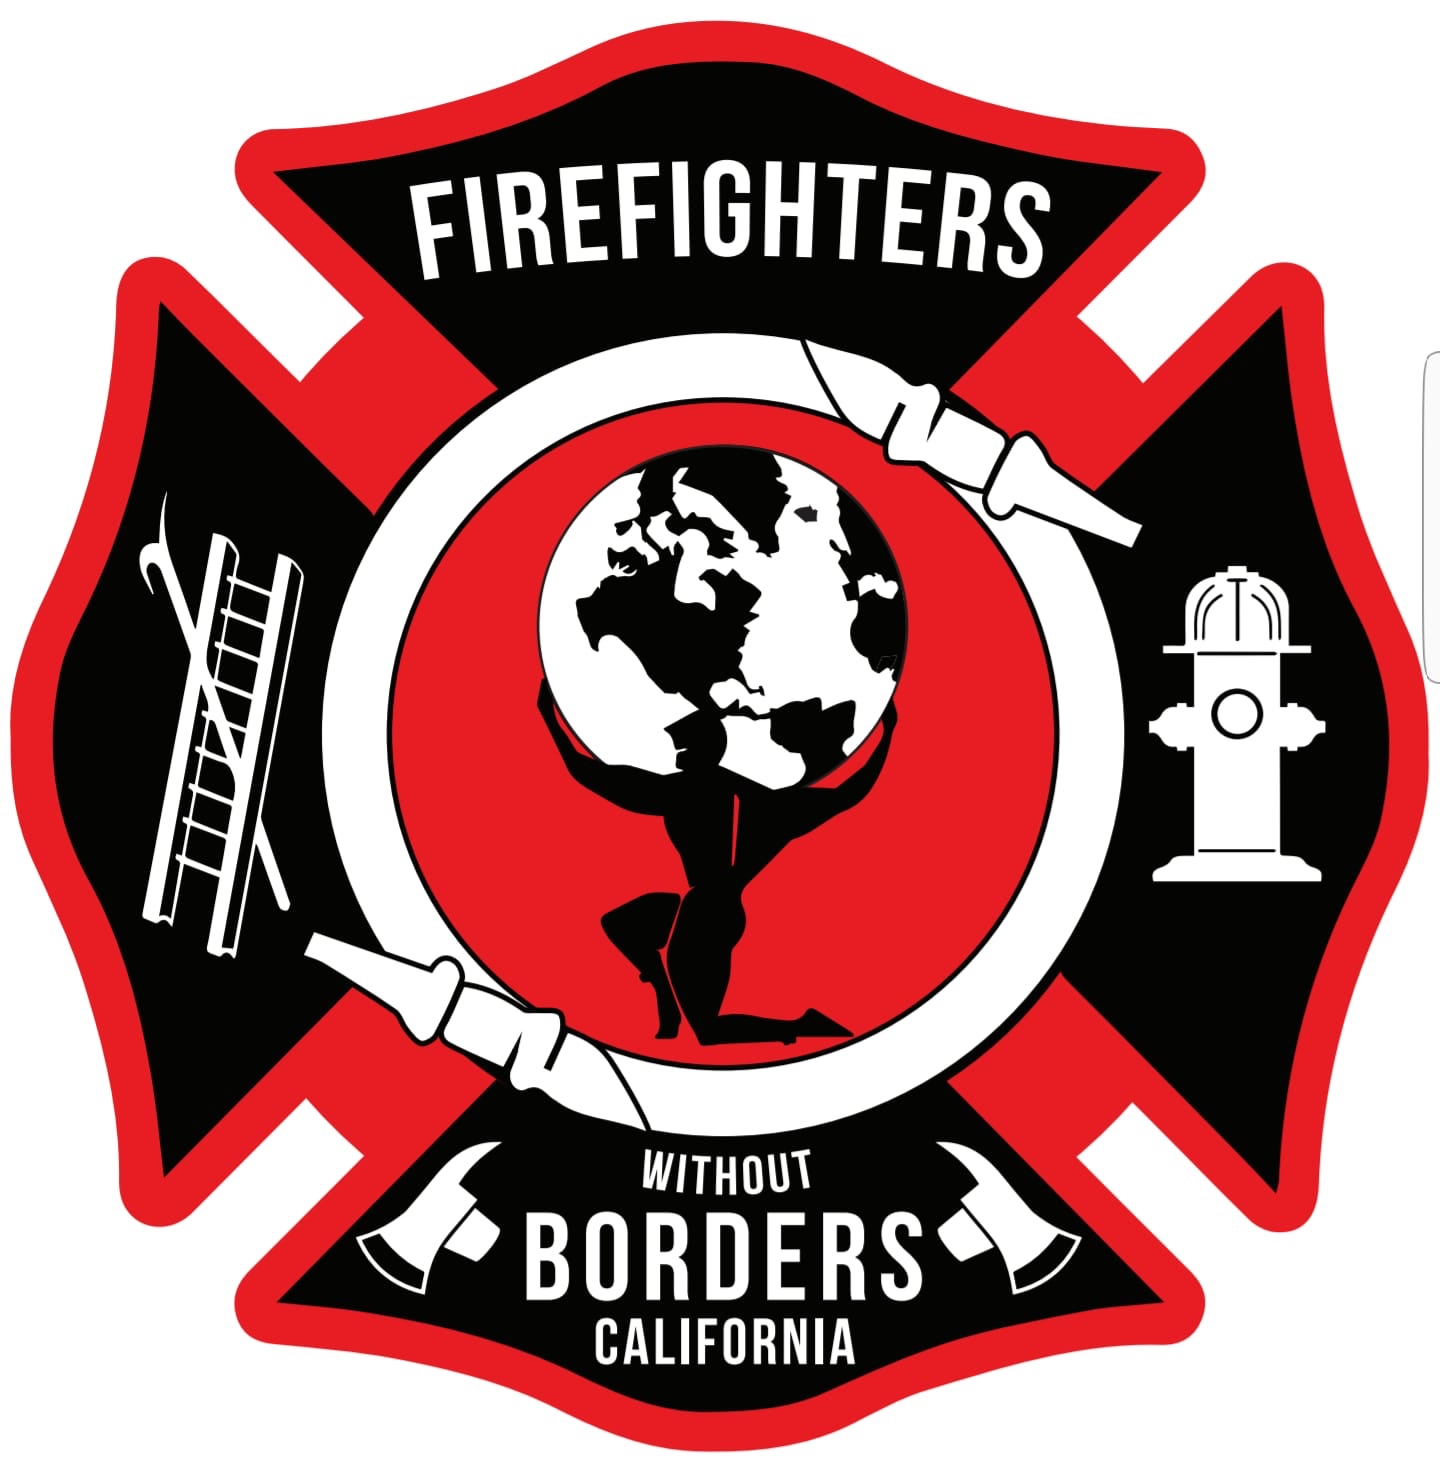 Firefighters without Borders California